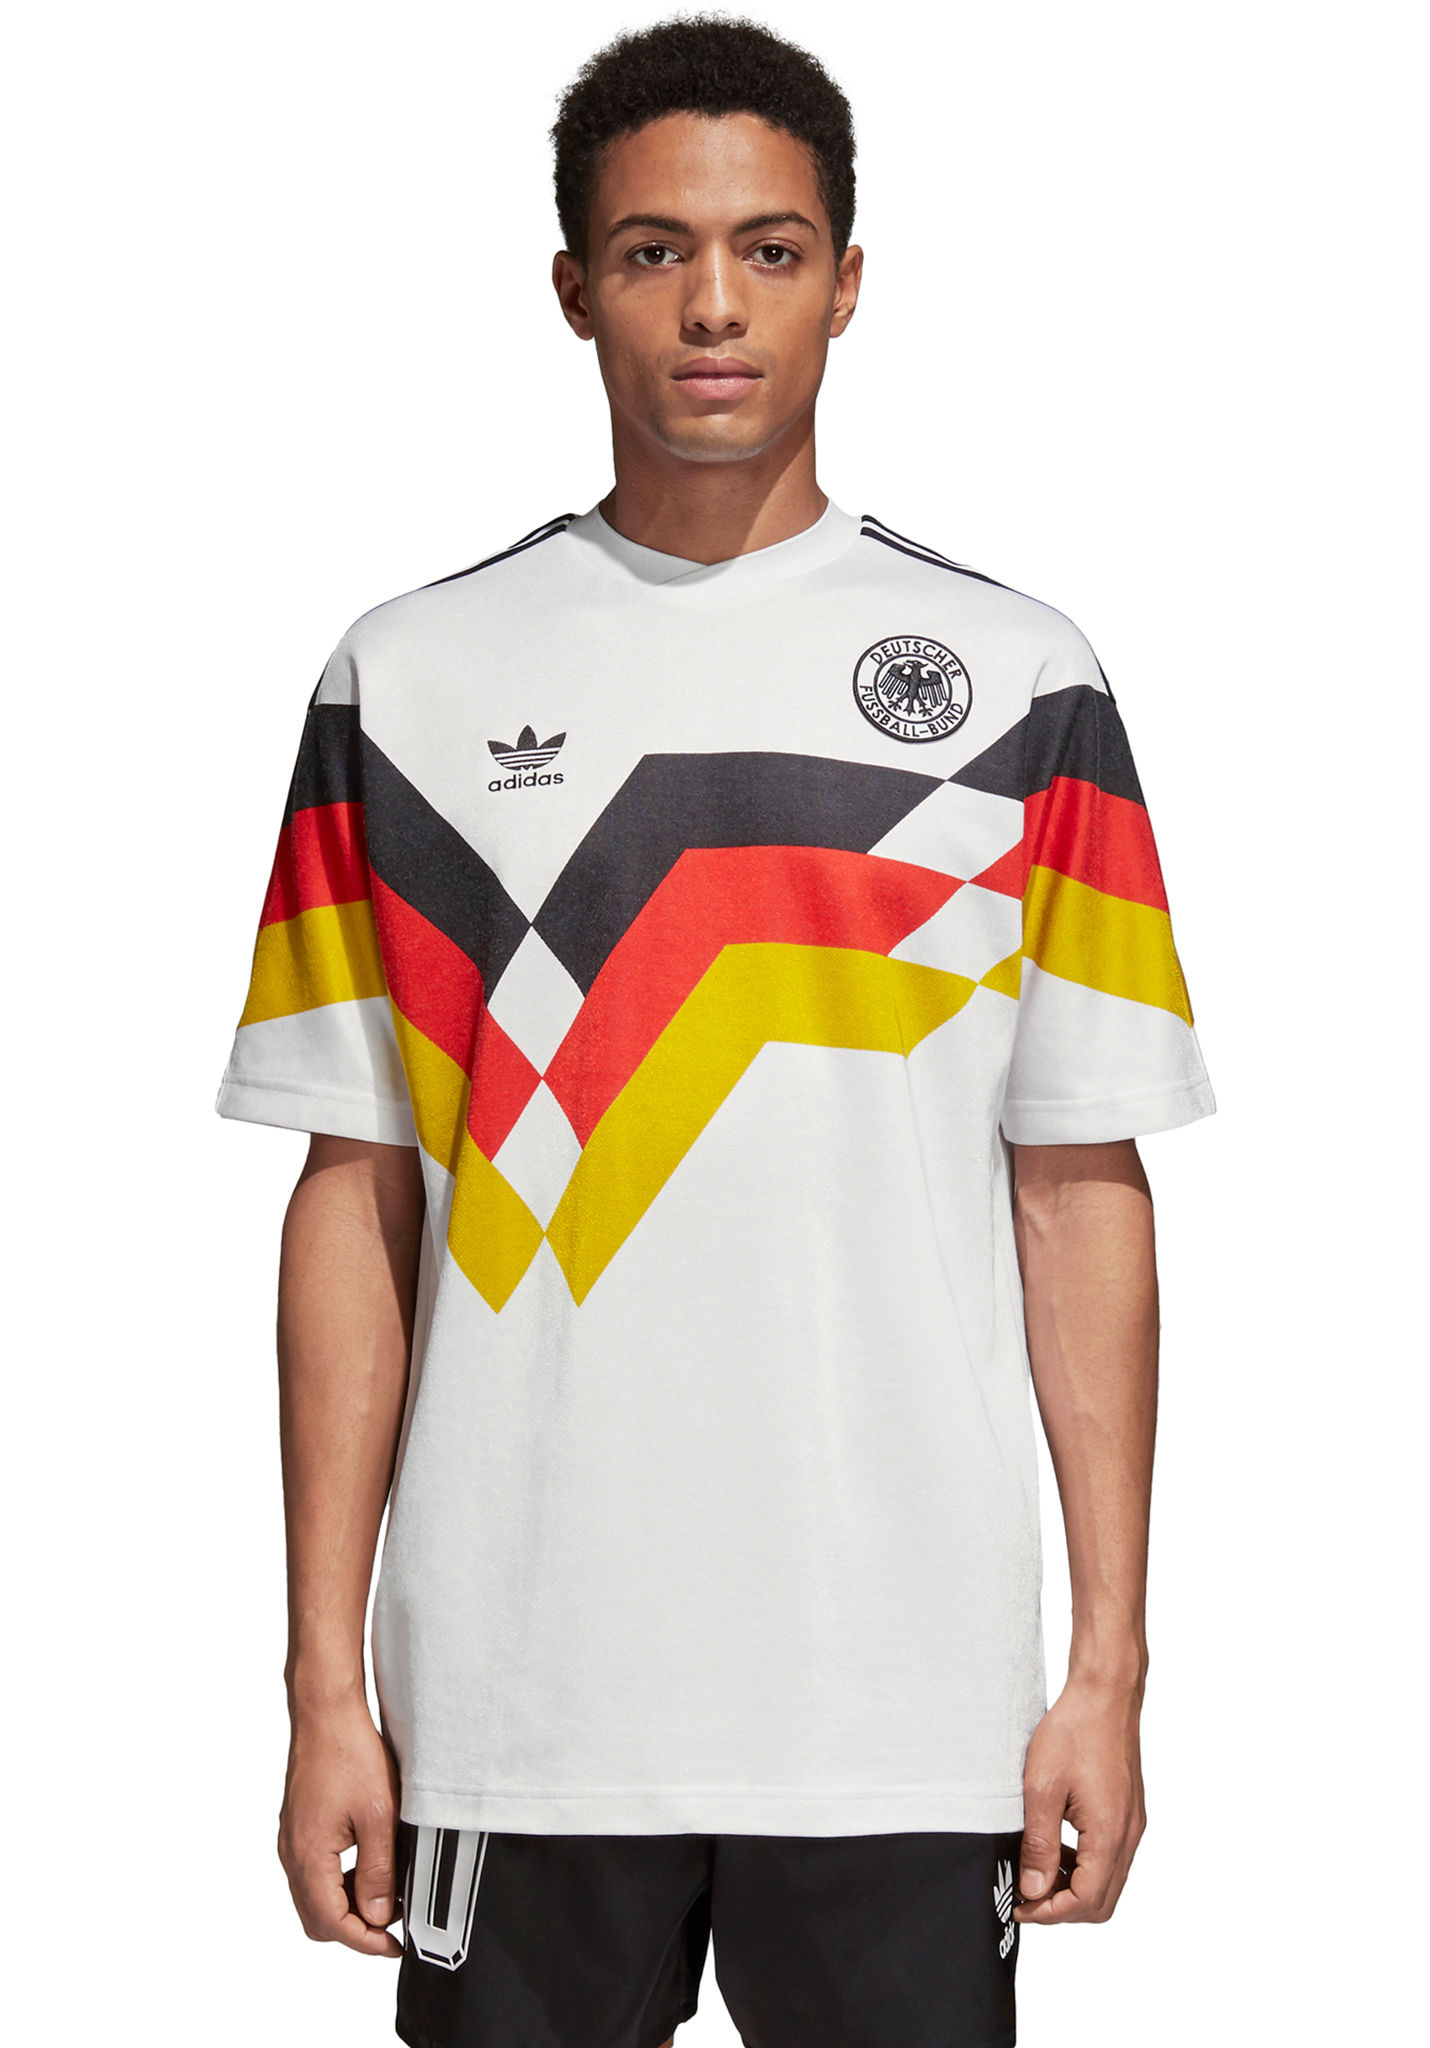 b5d3bb0624ae ADIDAS ORIGINALS Germany Jersey - T-Shirt for Men - White - Planet Sports